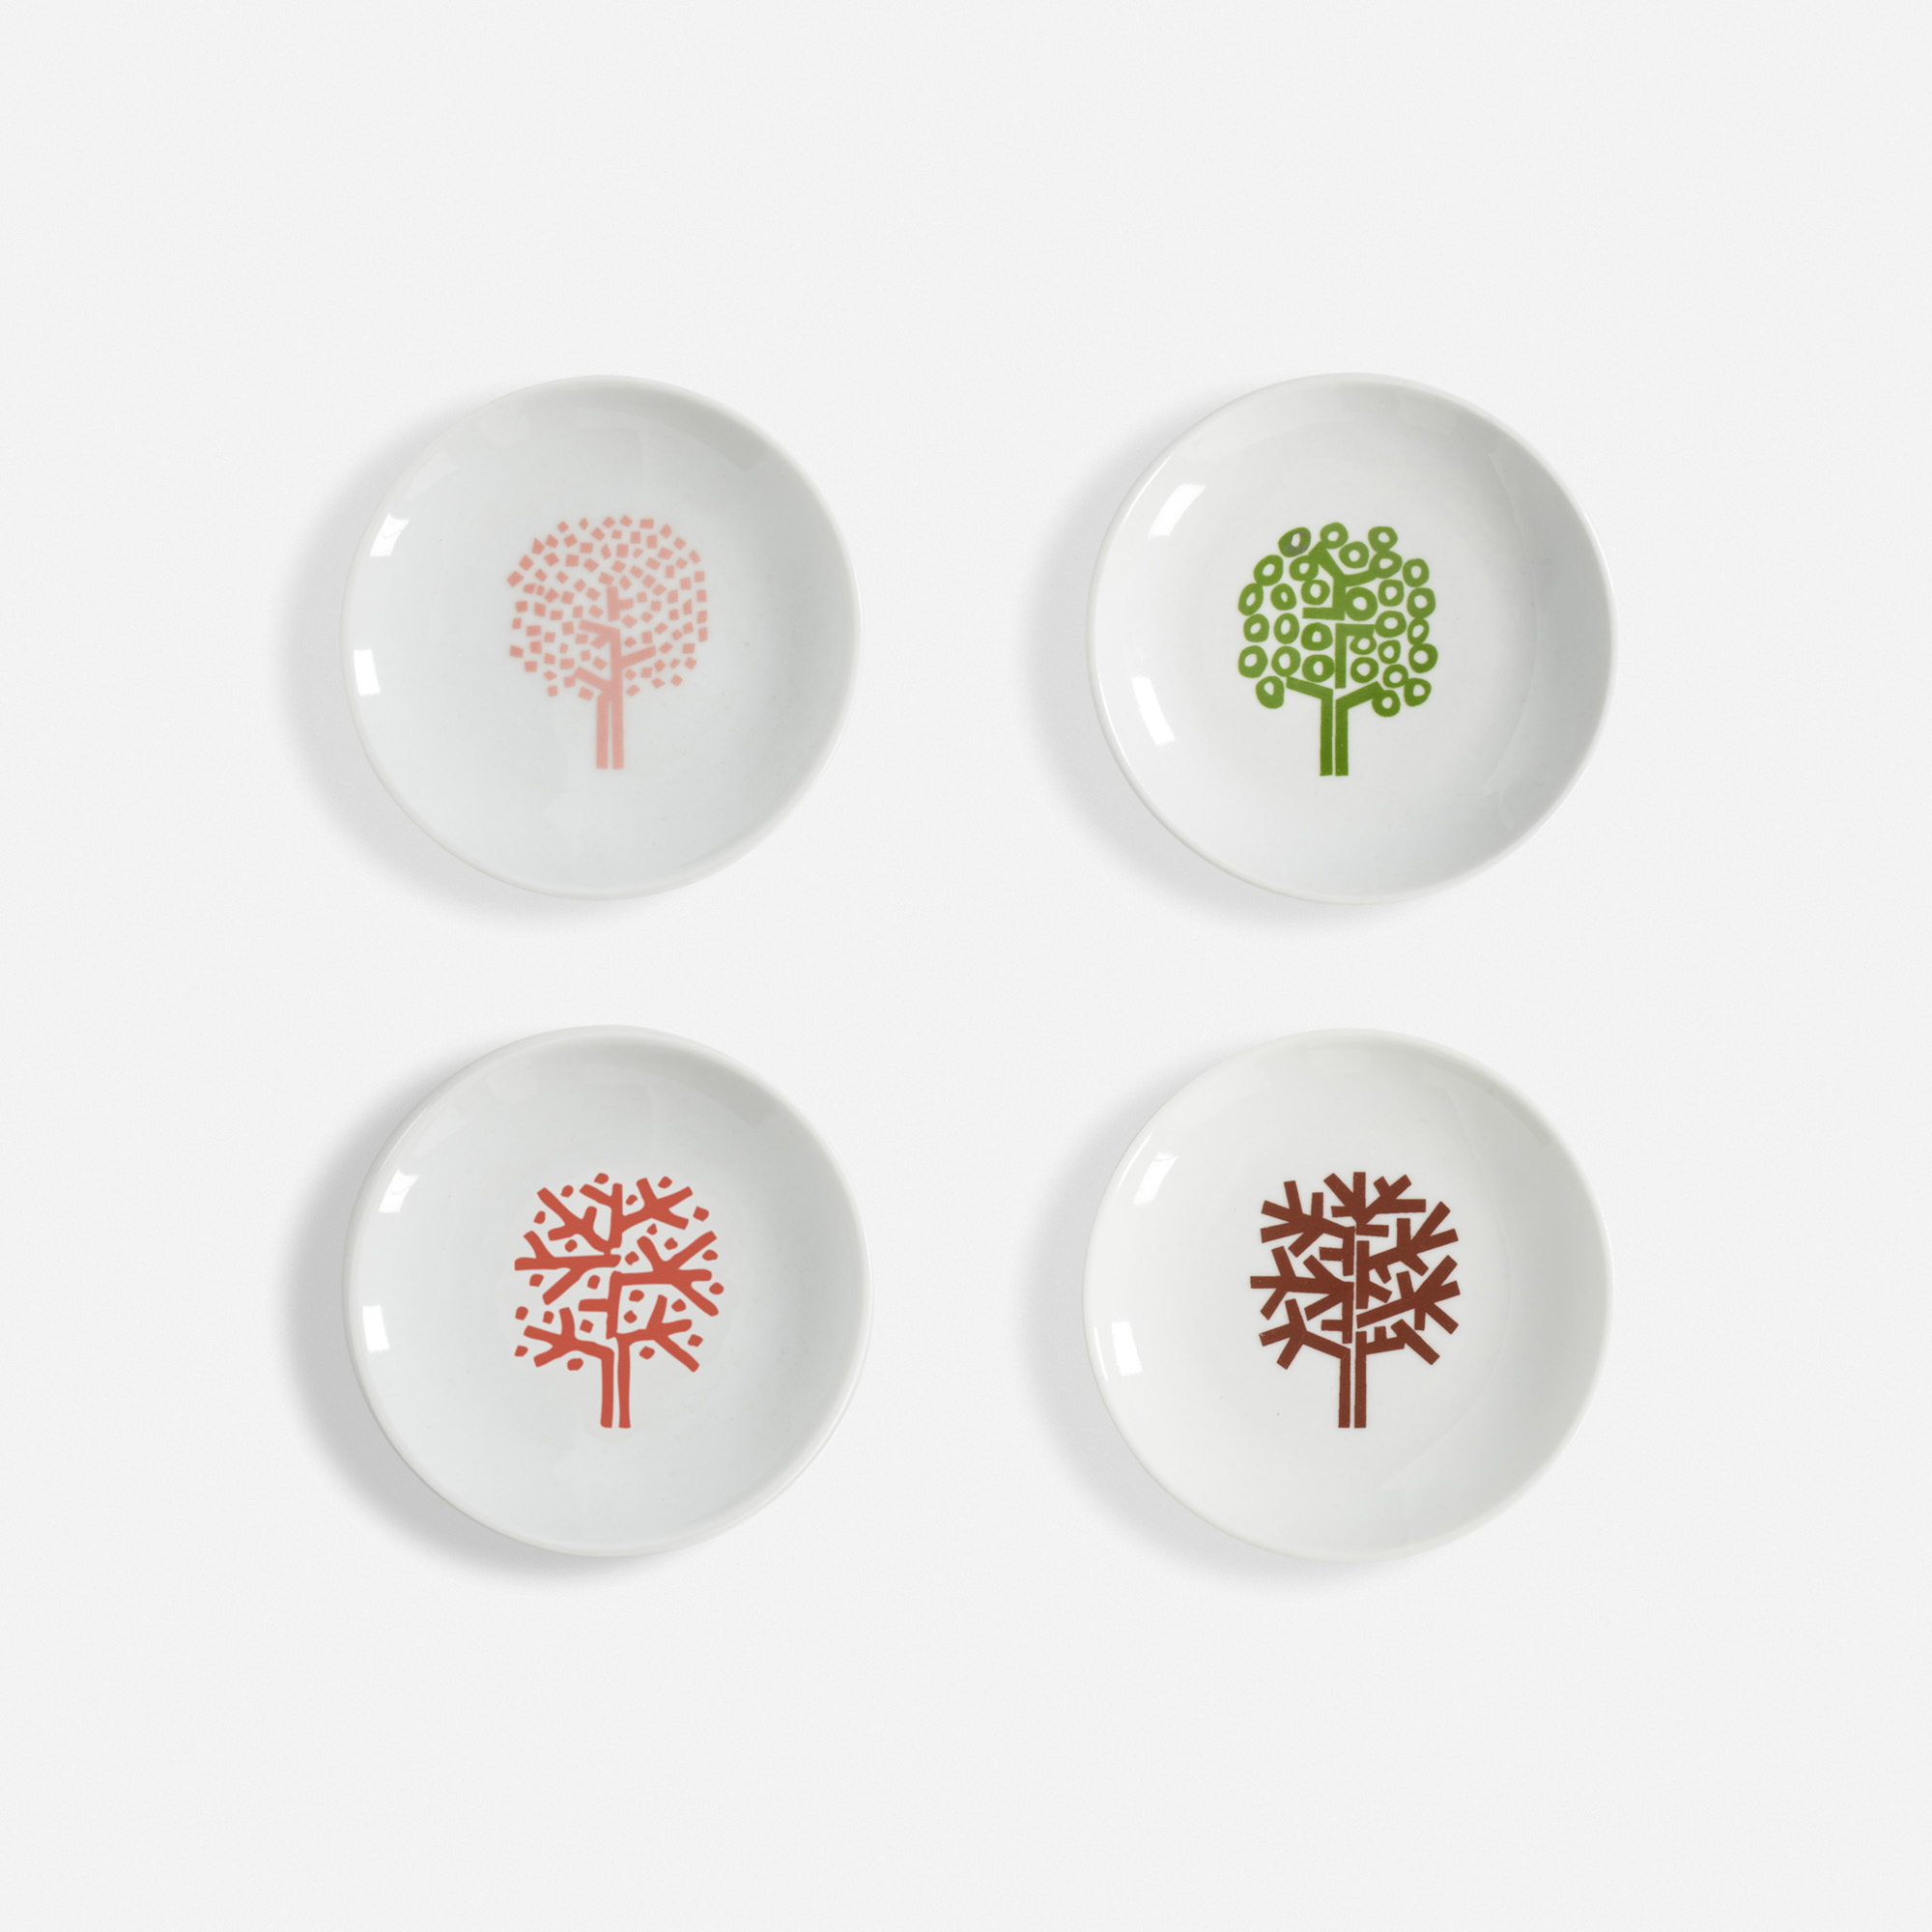 139:  / Four Seasons ashtrays, set of four (1 of 1)